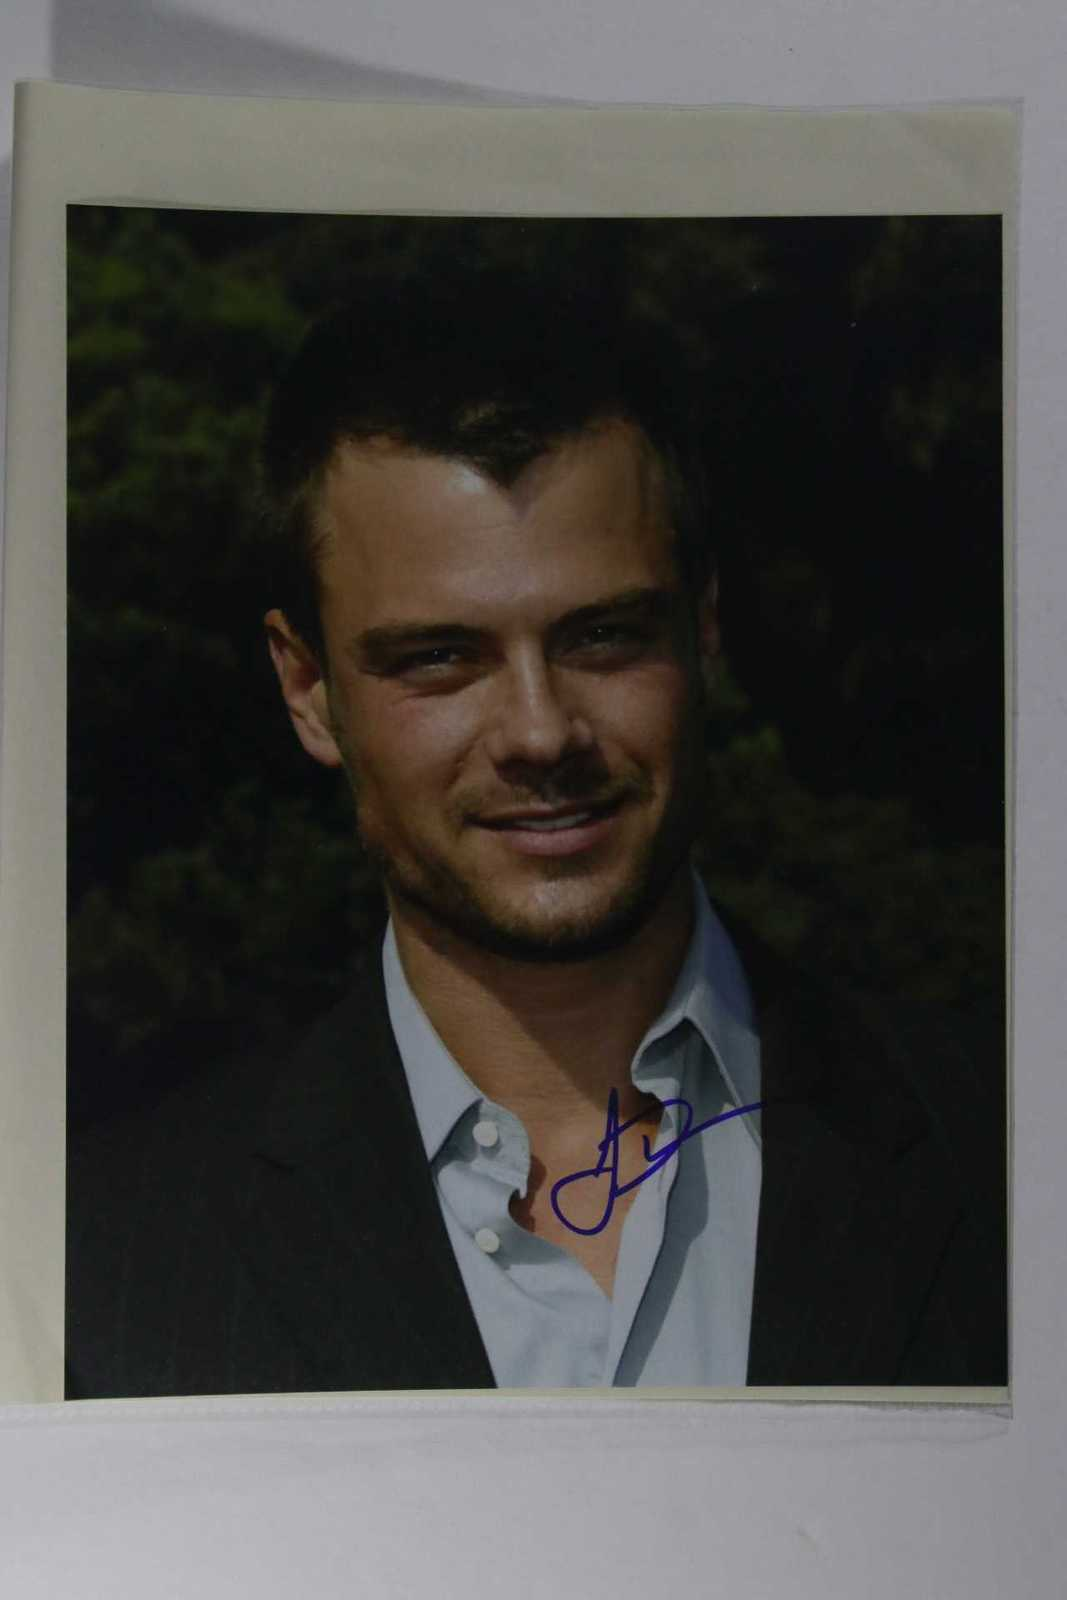 Primary image for Josh Duhamel Signed Autographed Glossy 8x10 Photo